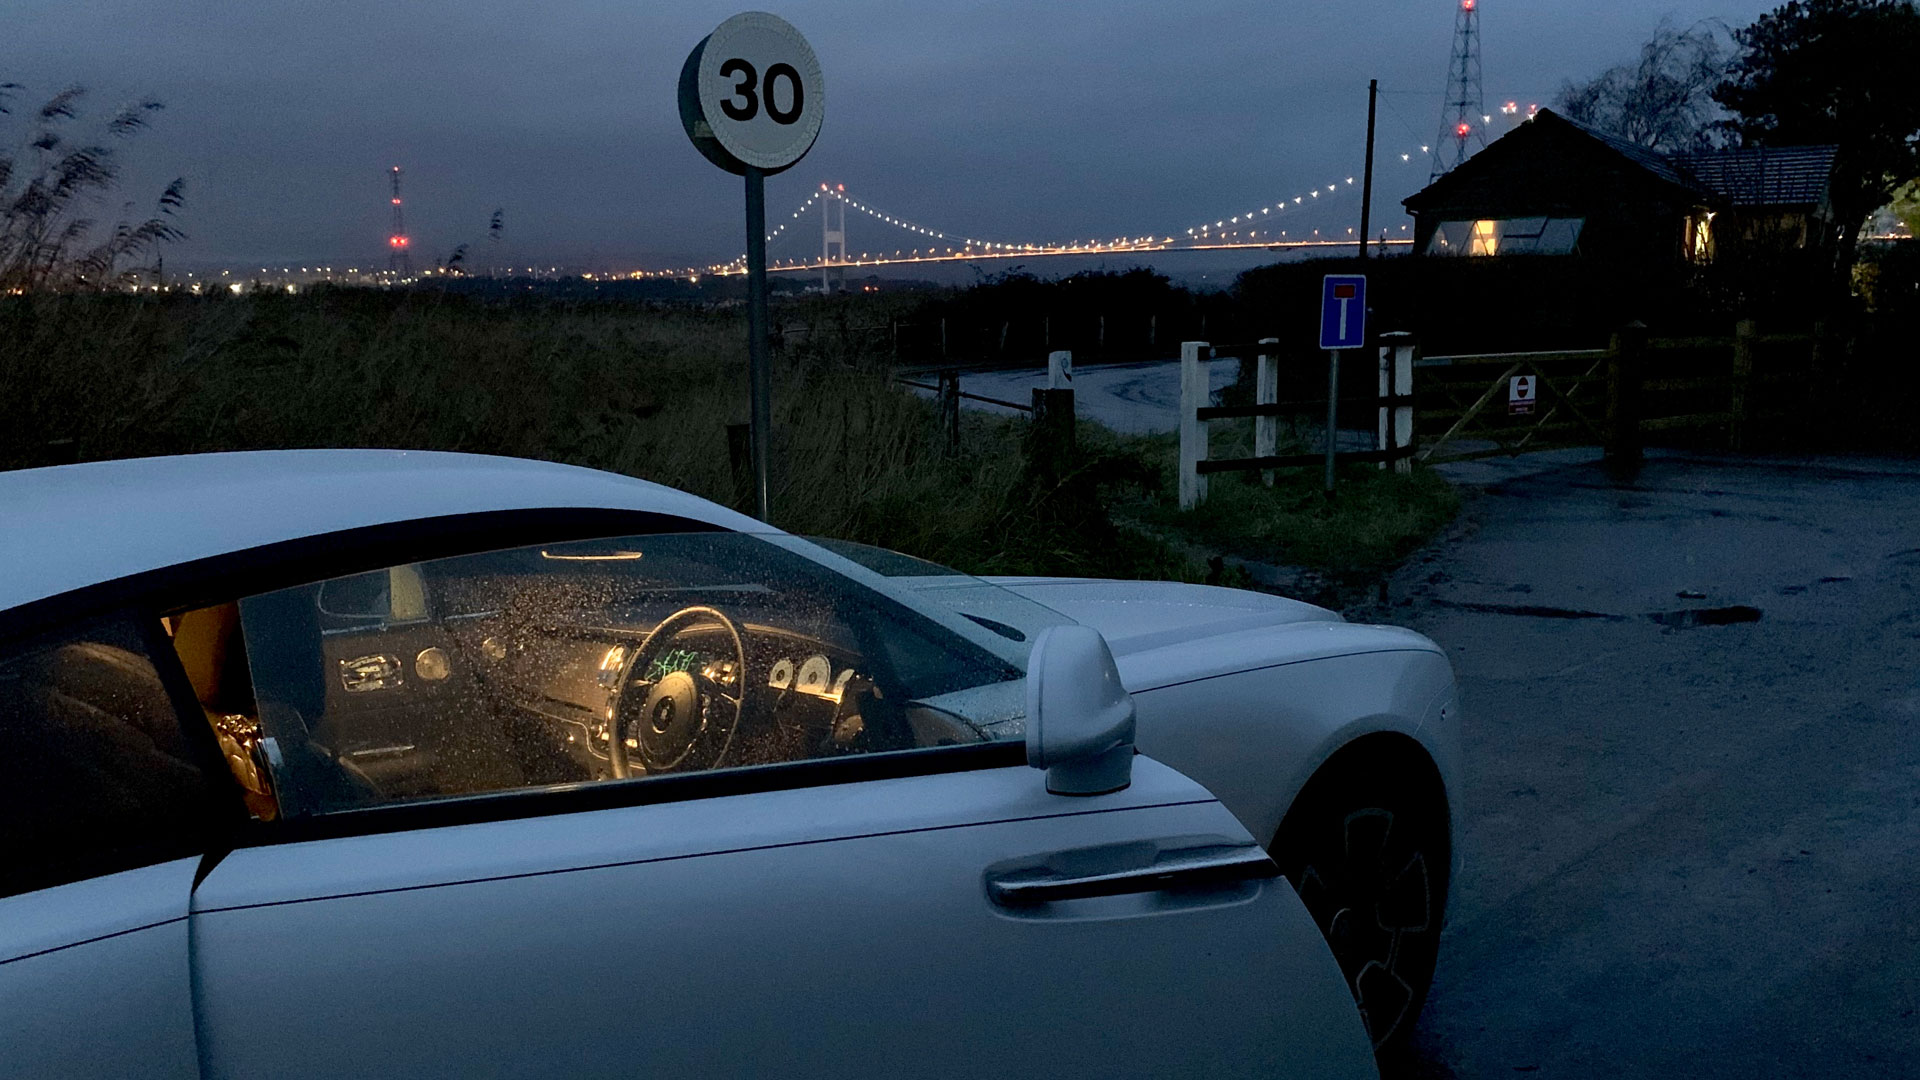 Rolls-Royce Wraith Black Badge at Severn Bridge